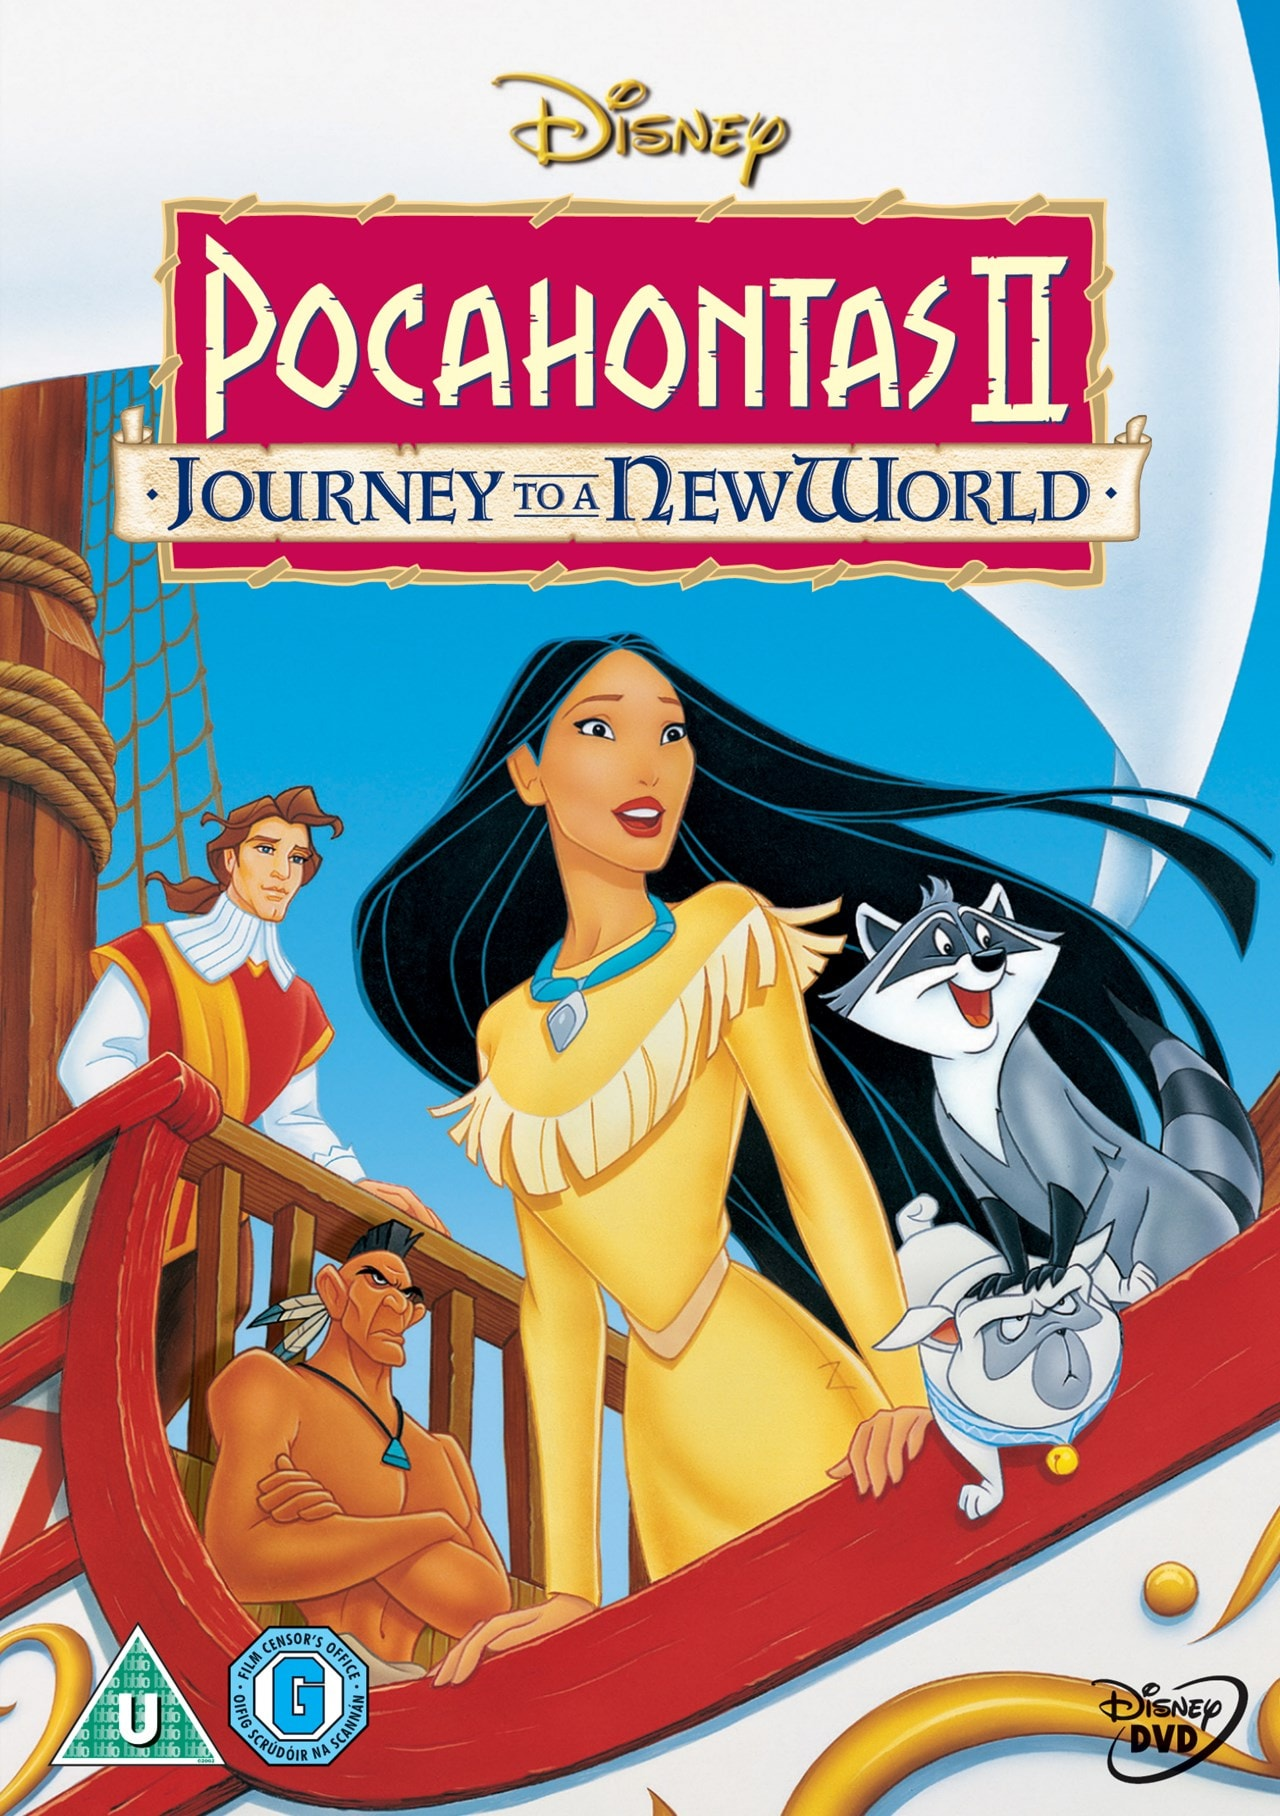 Pocahontas II - Journey to a New World - 1